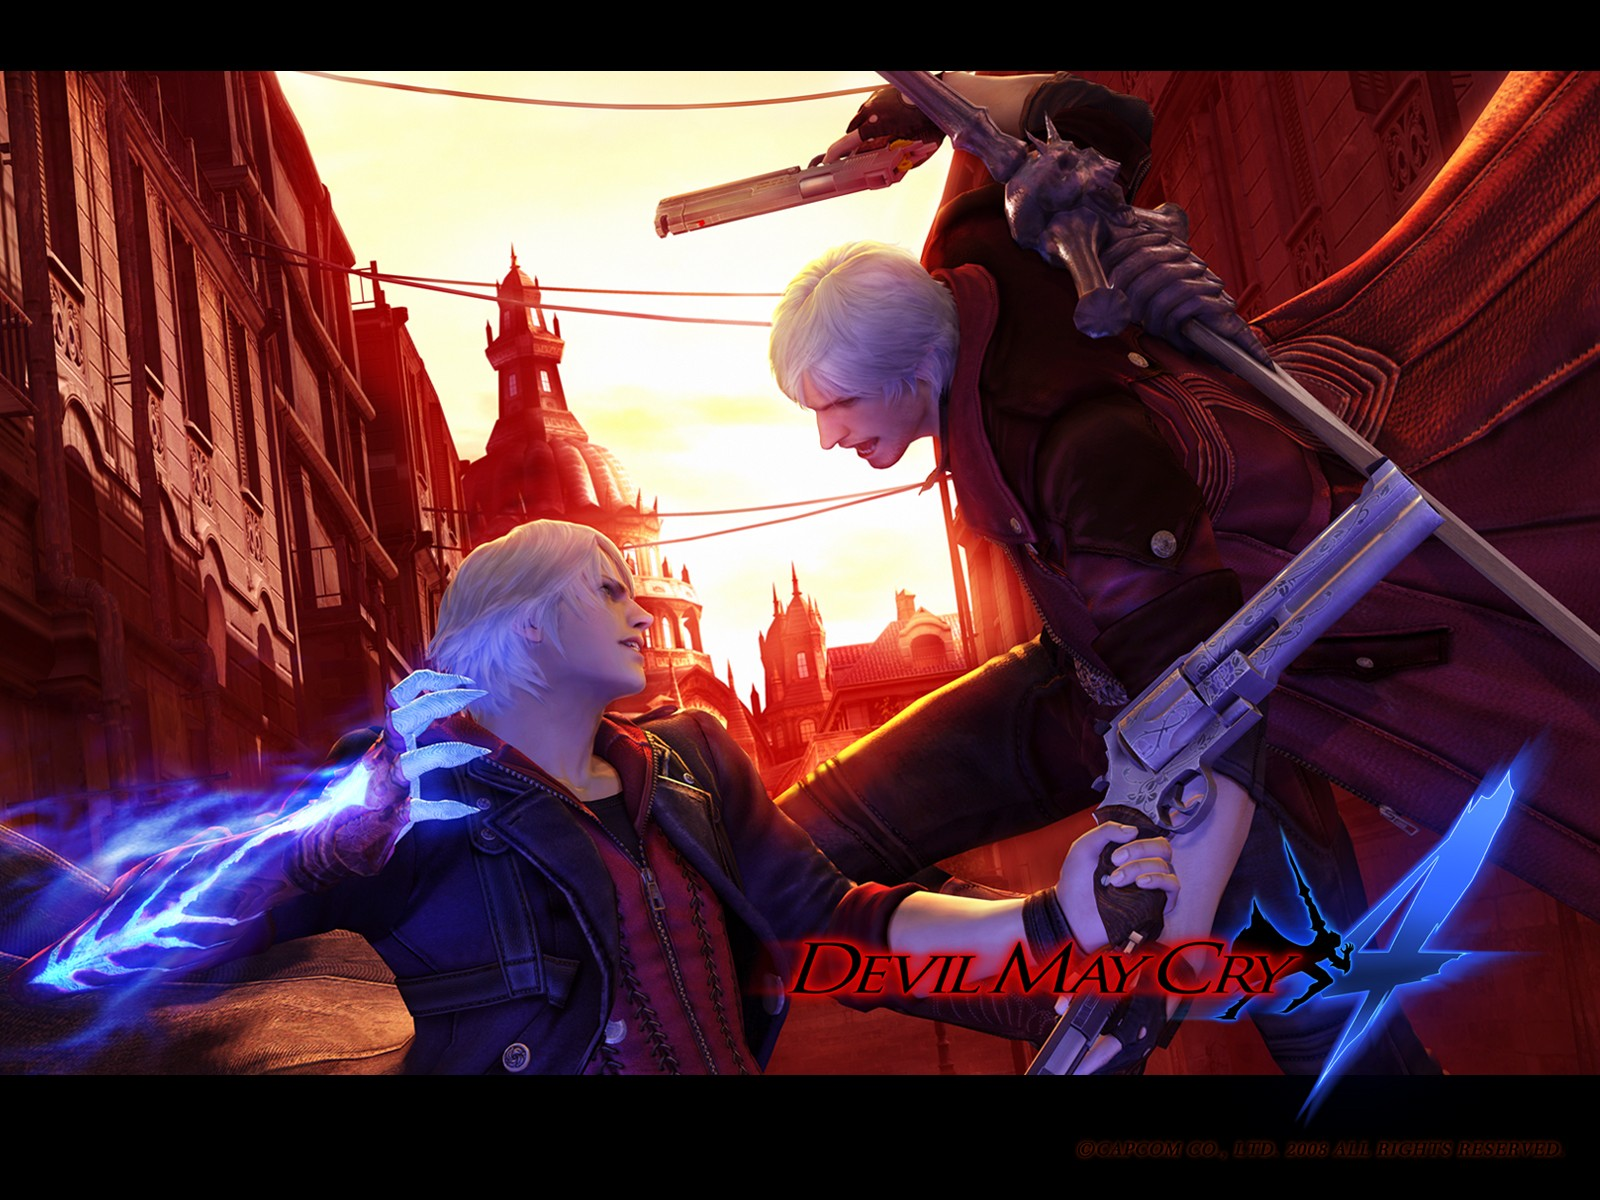 xbox360 game devil may cry 4 official wallpapers1600x...